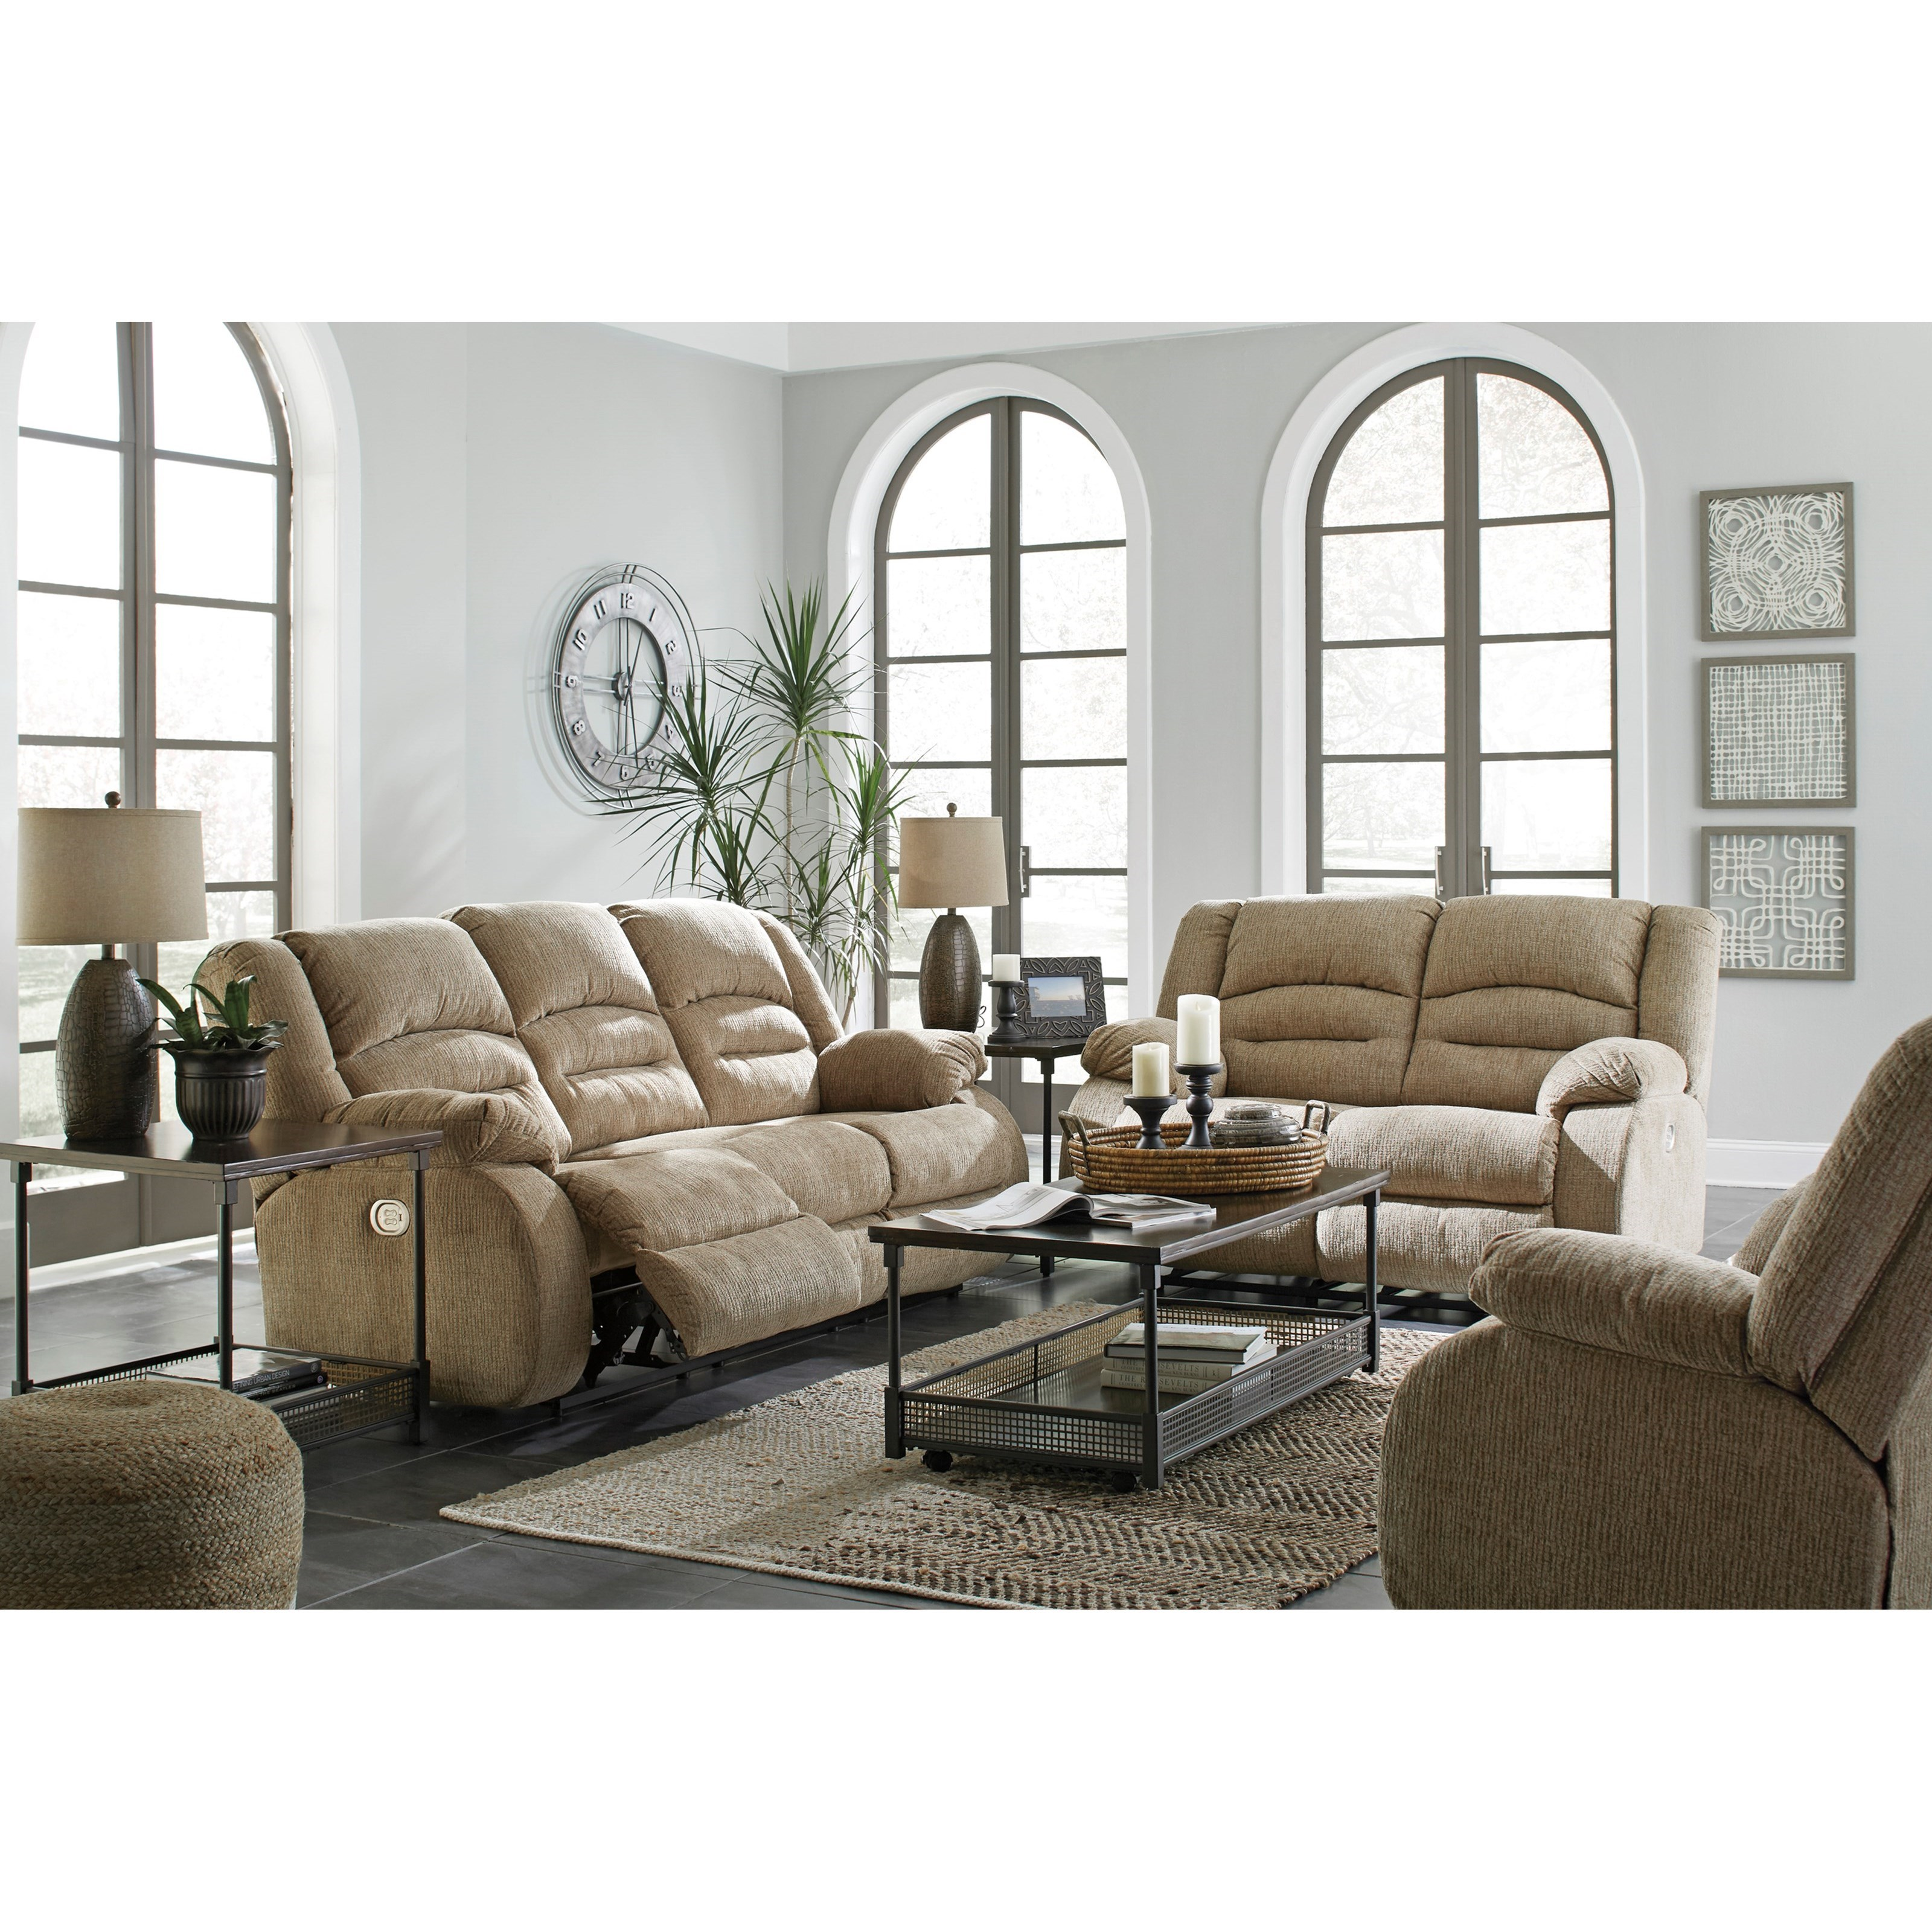 Signature Design by Ashley Labarre Reclining Living Room Group ...